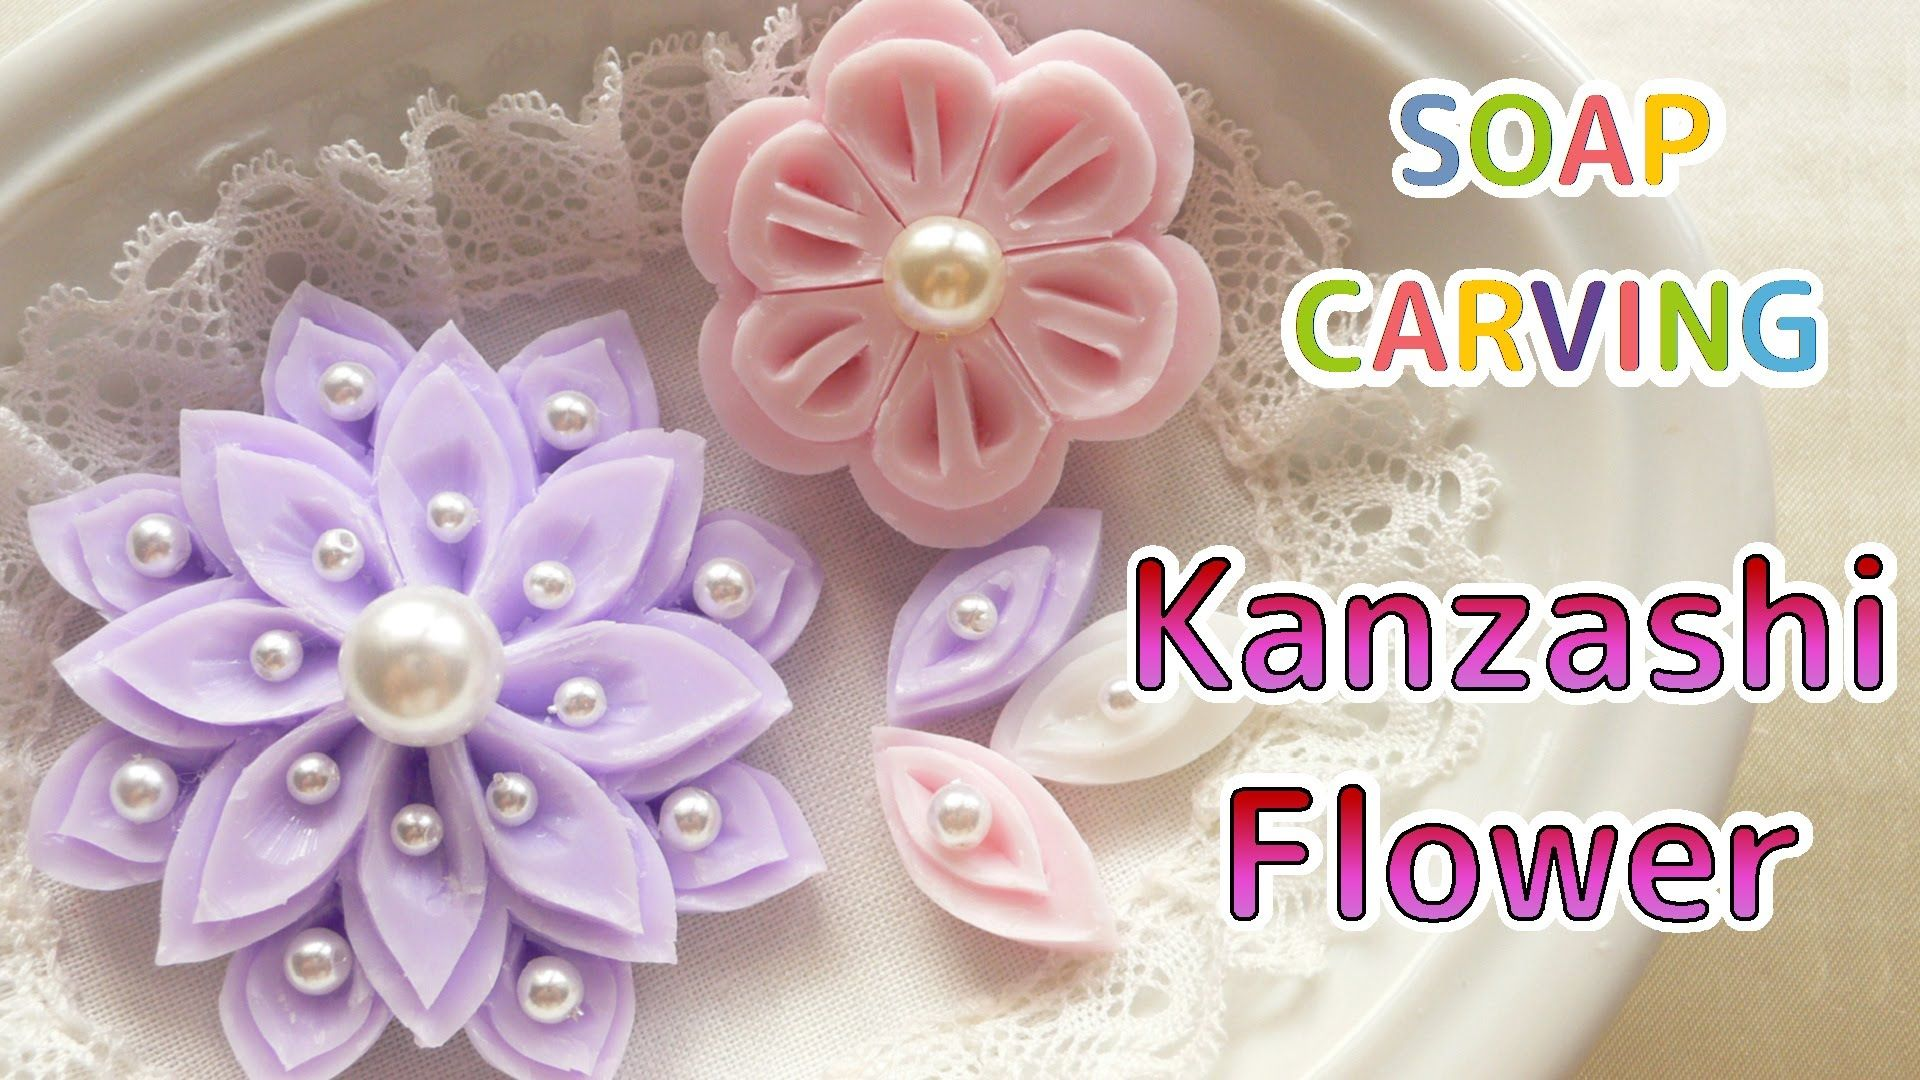 Soap carving easy kanzashi flowers and petals how to make